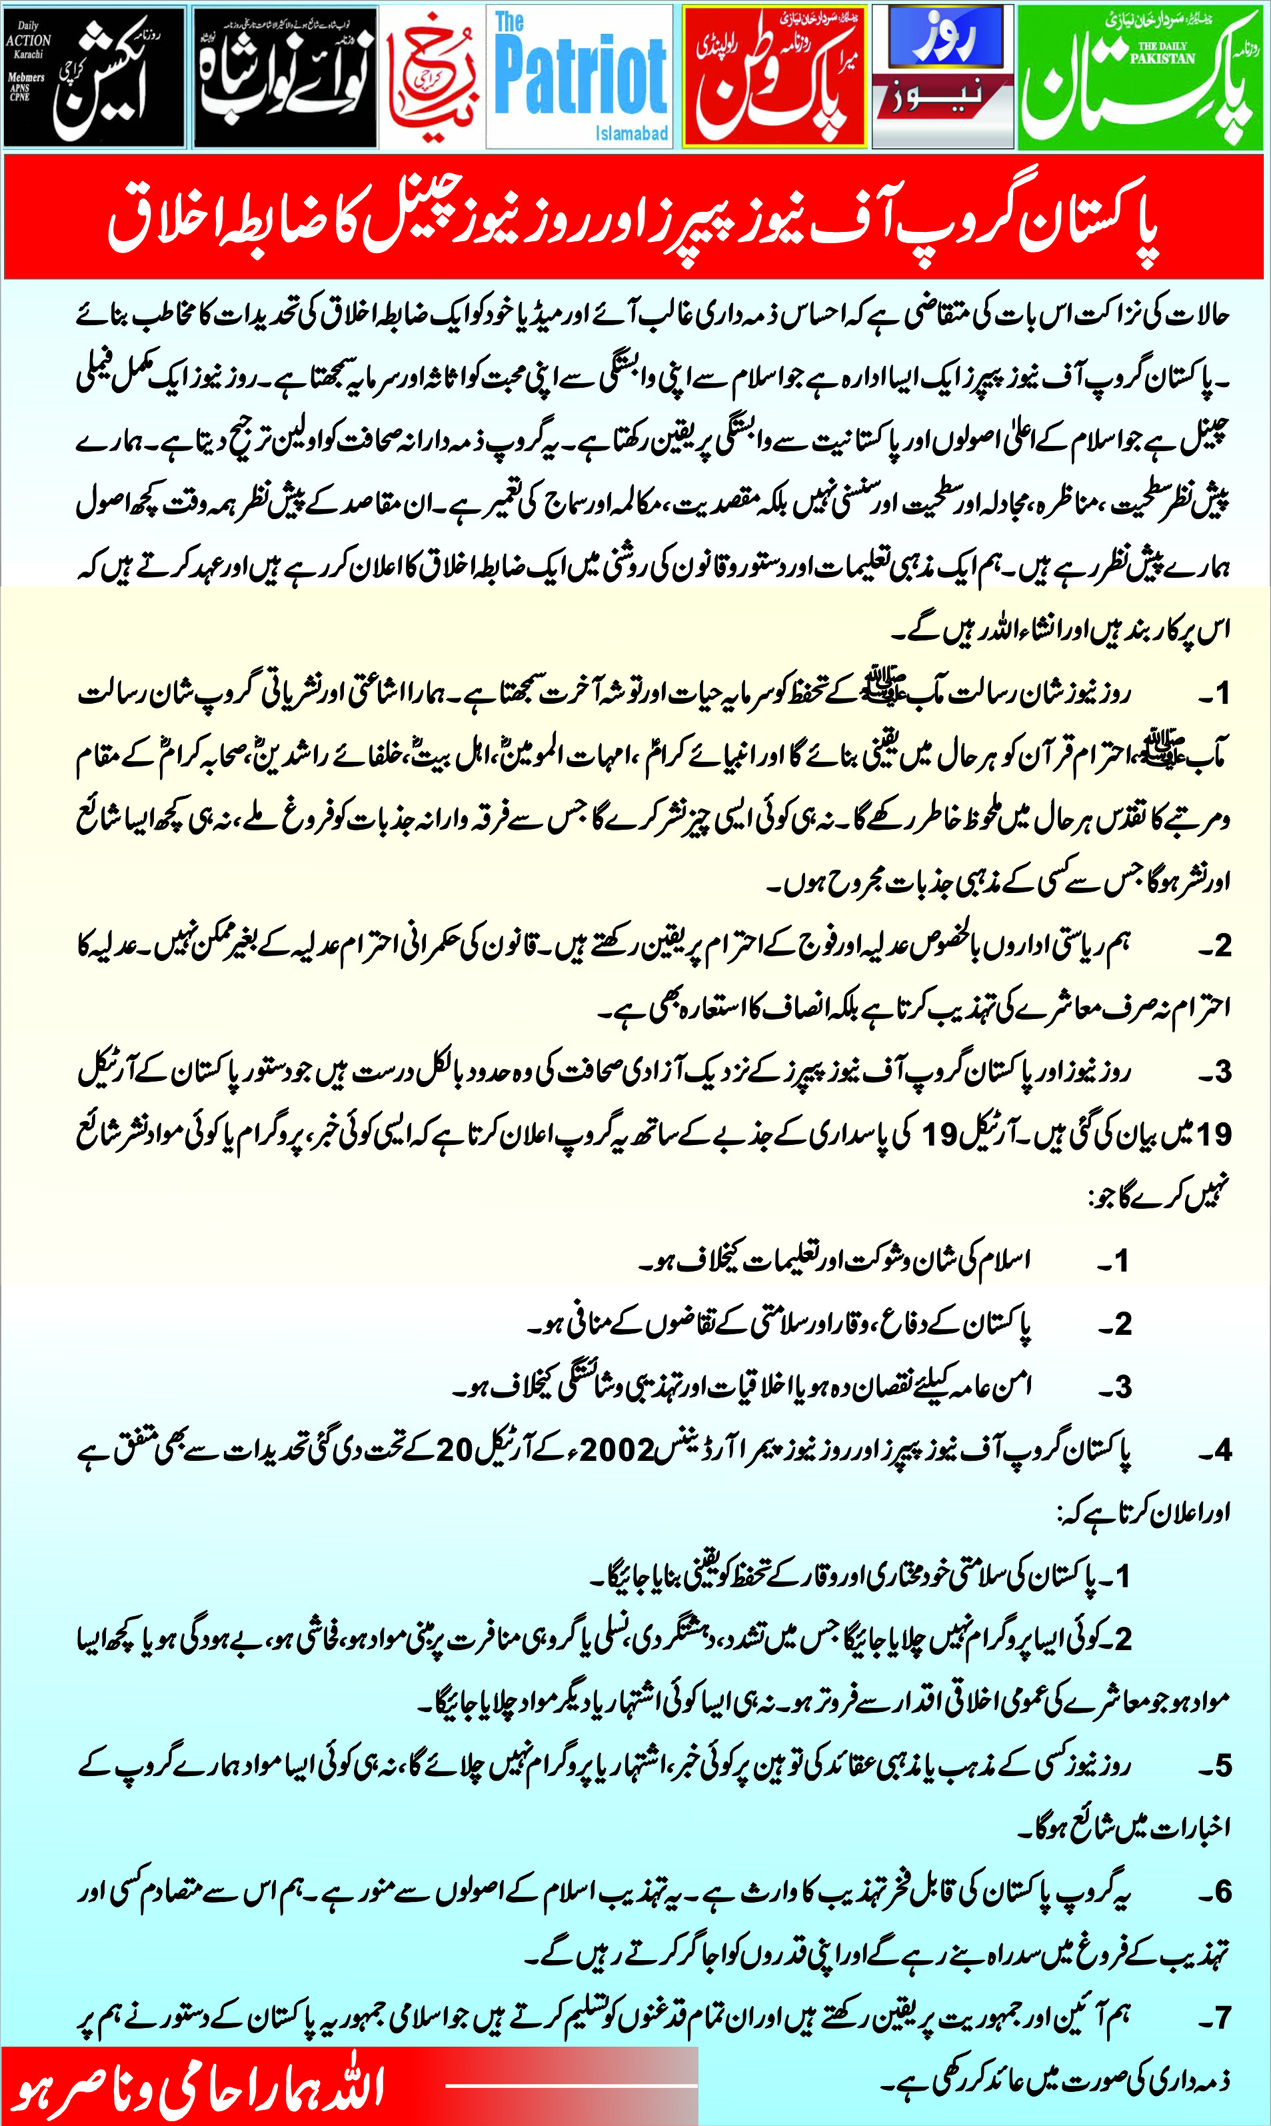 A copy of the code of conduct that is in place at Pakistan Group of Newspapers.